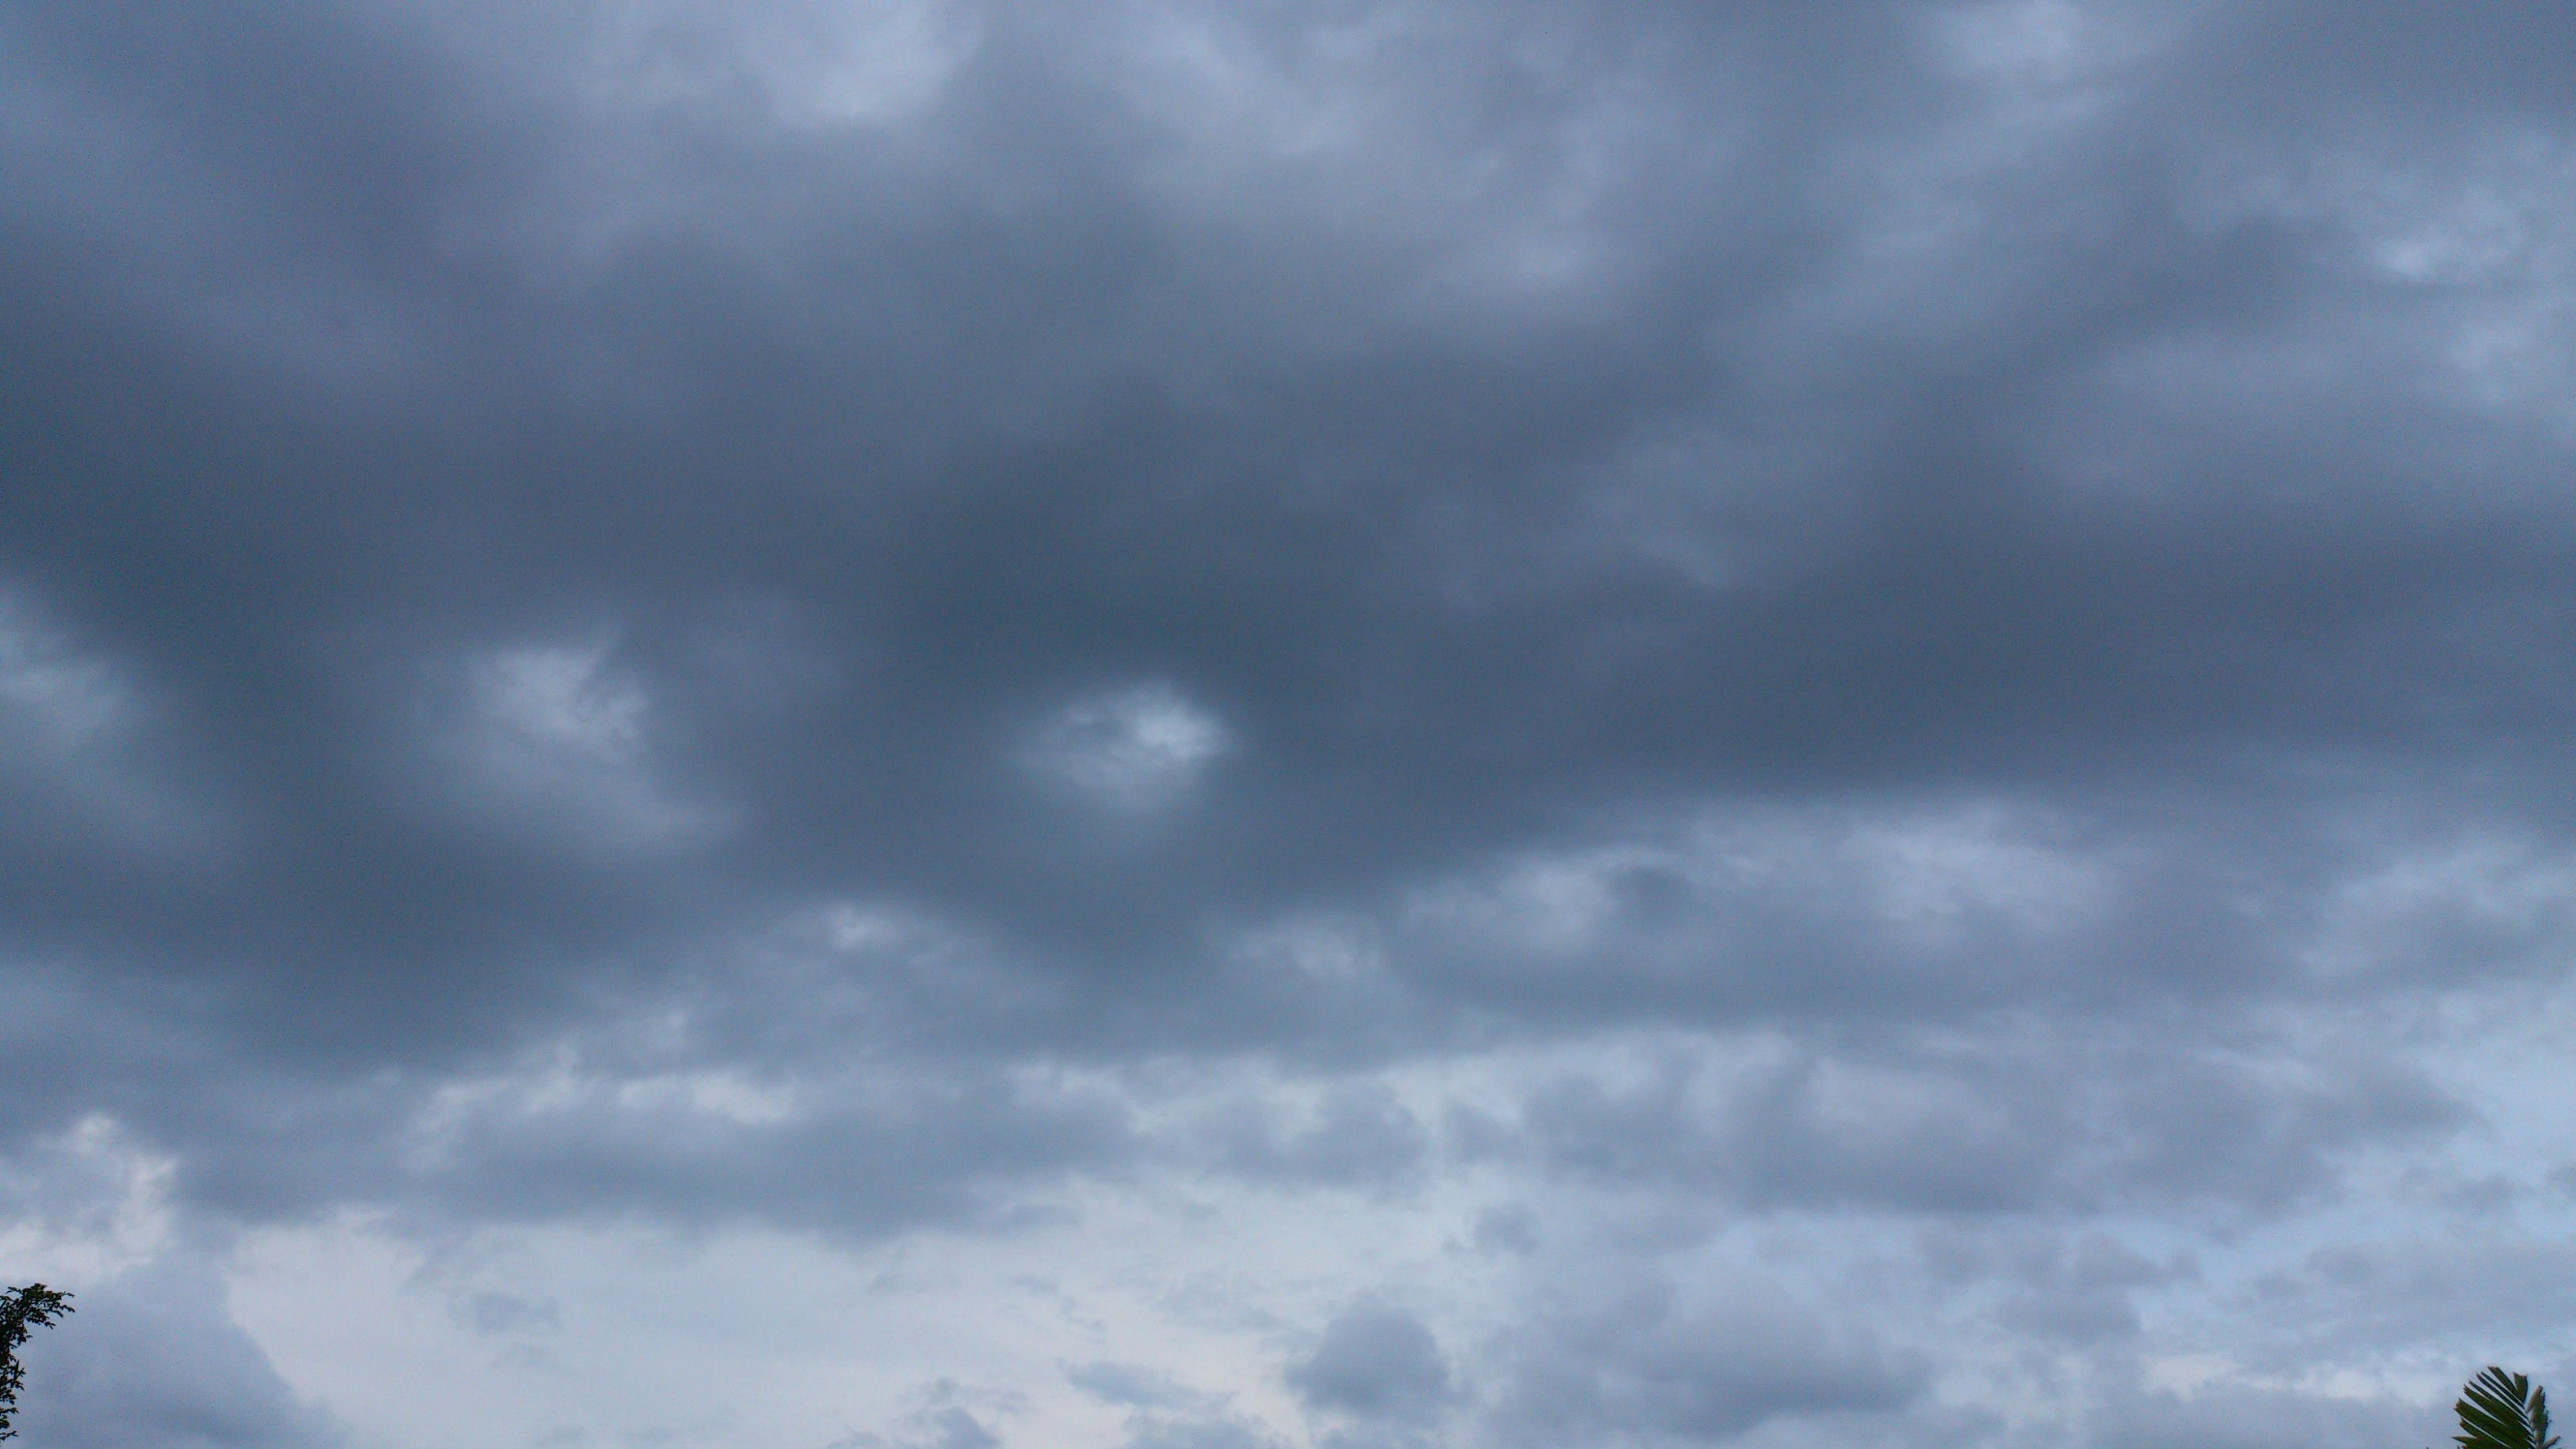 sky, cloud - sky, low angle view, cloudy, weather, beauty in nature, tranquility, scenics, overcast, nature, cloudscape, tranquil scene, cloud, storm cloud, sky only, idyllic, outdoors, dramatic sky, no people, day